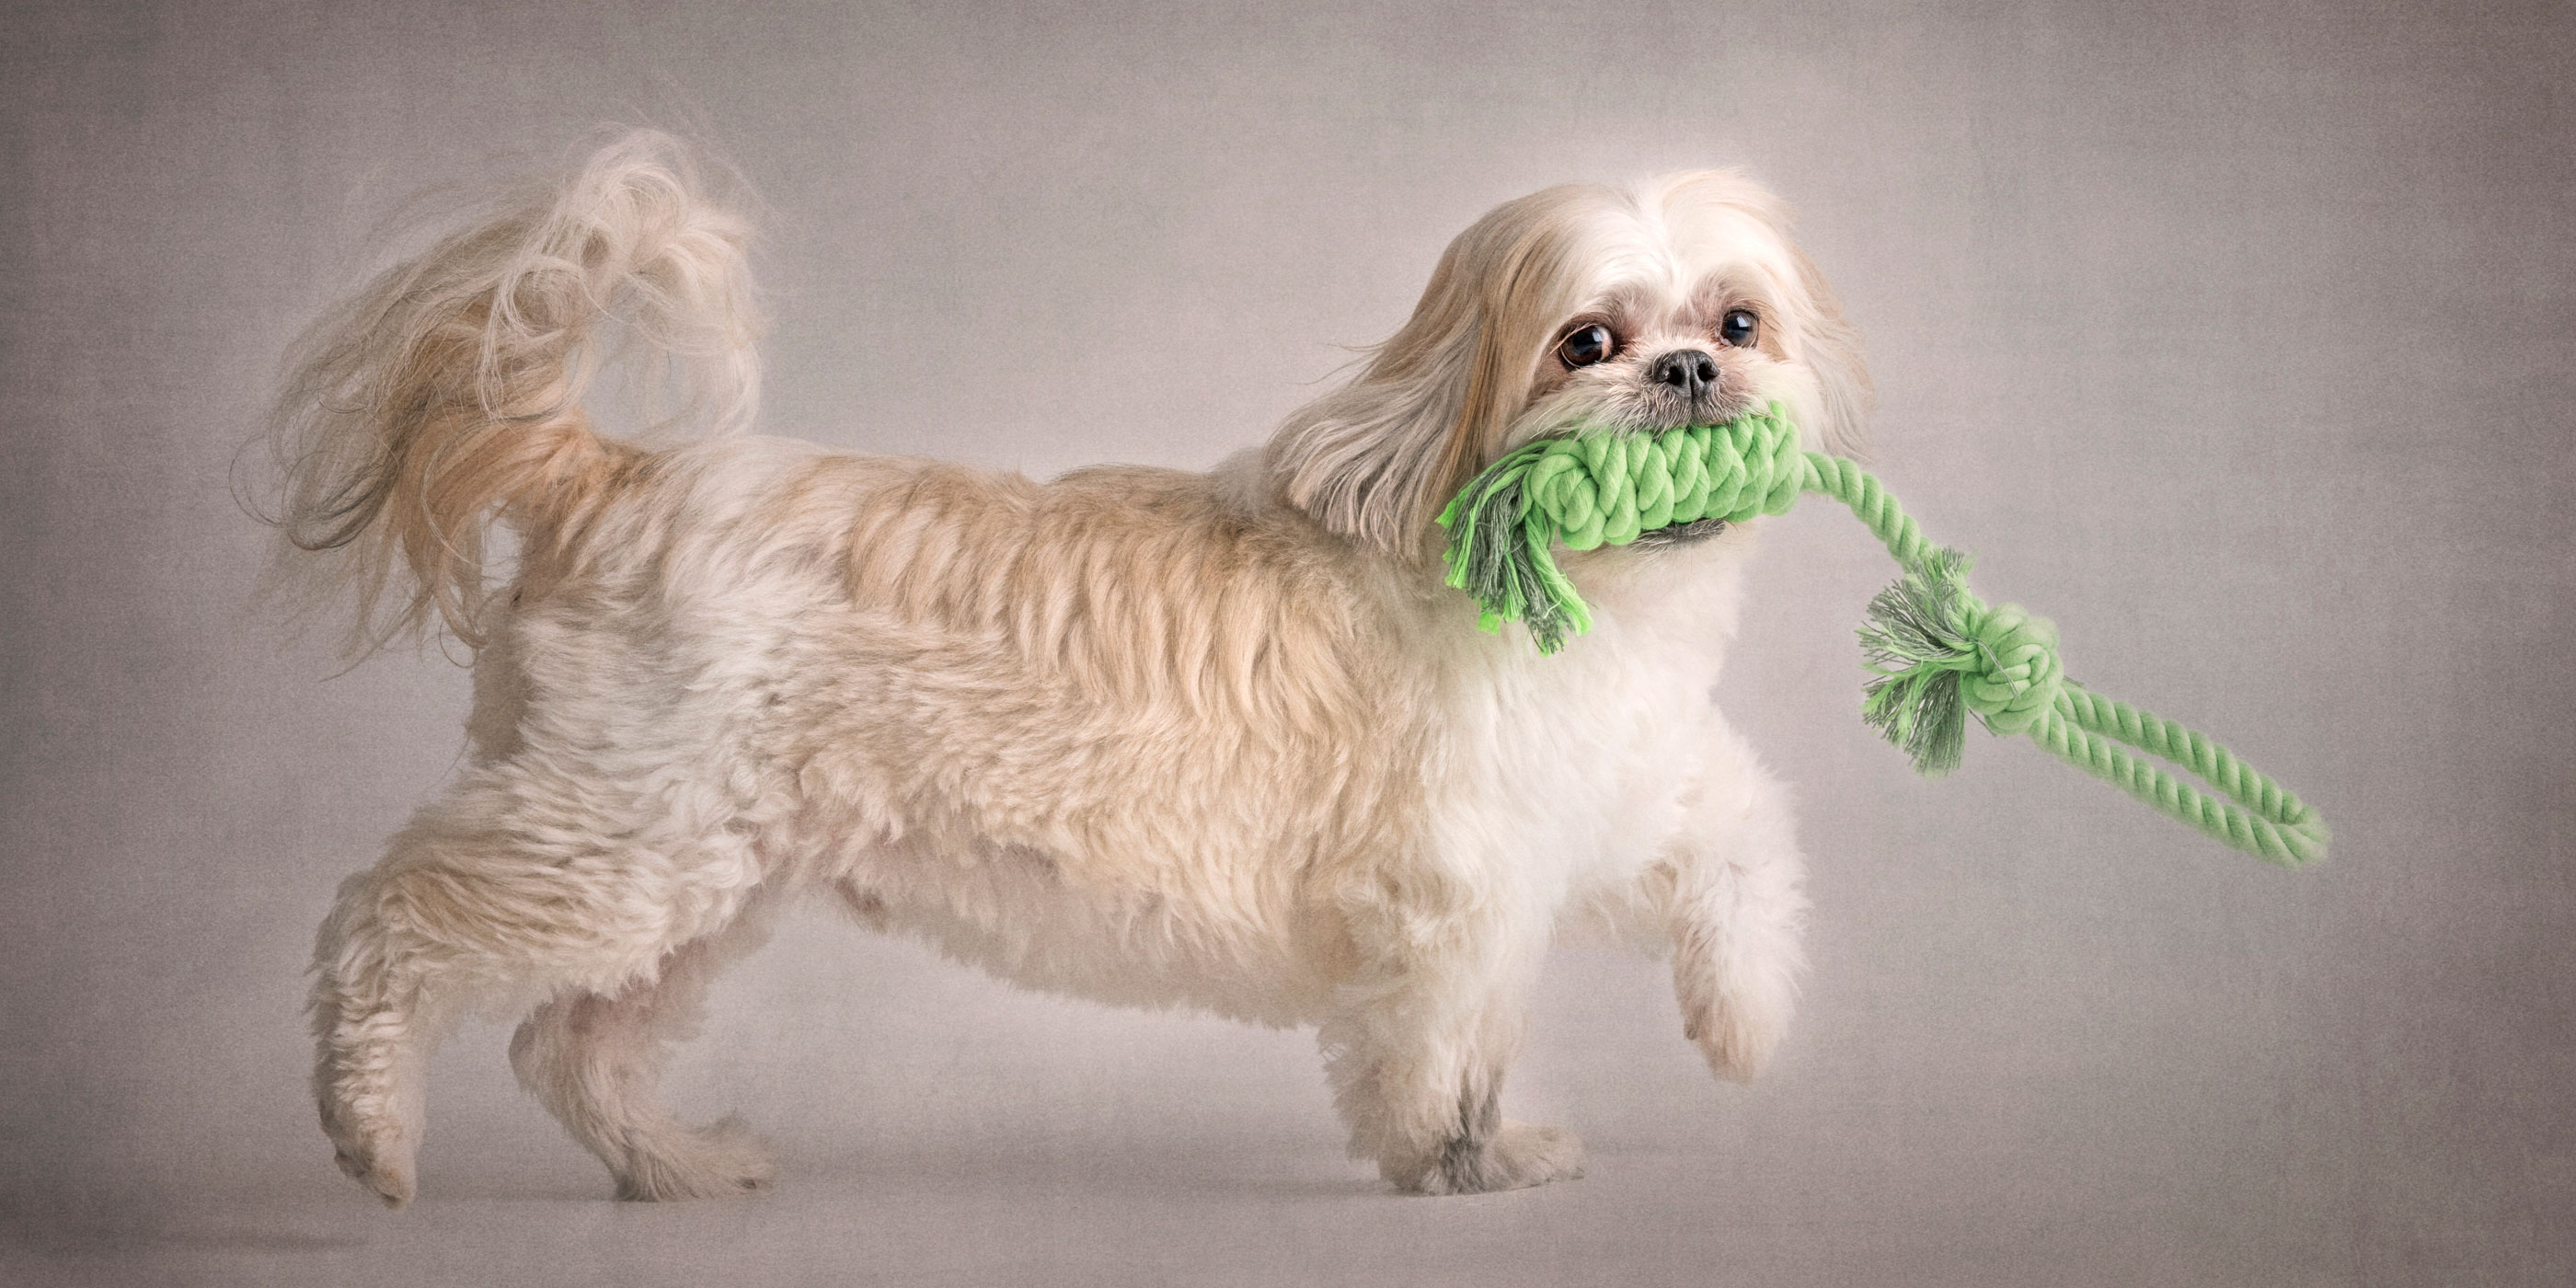 prancing shih tzu maltese cross with green rope